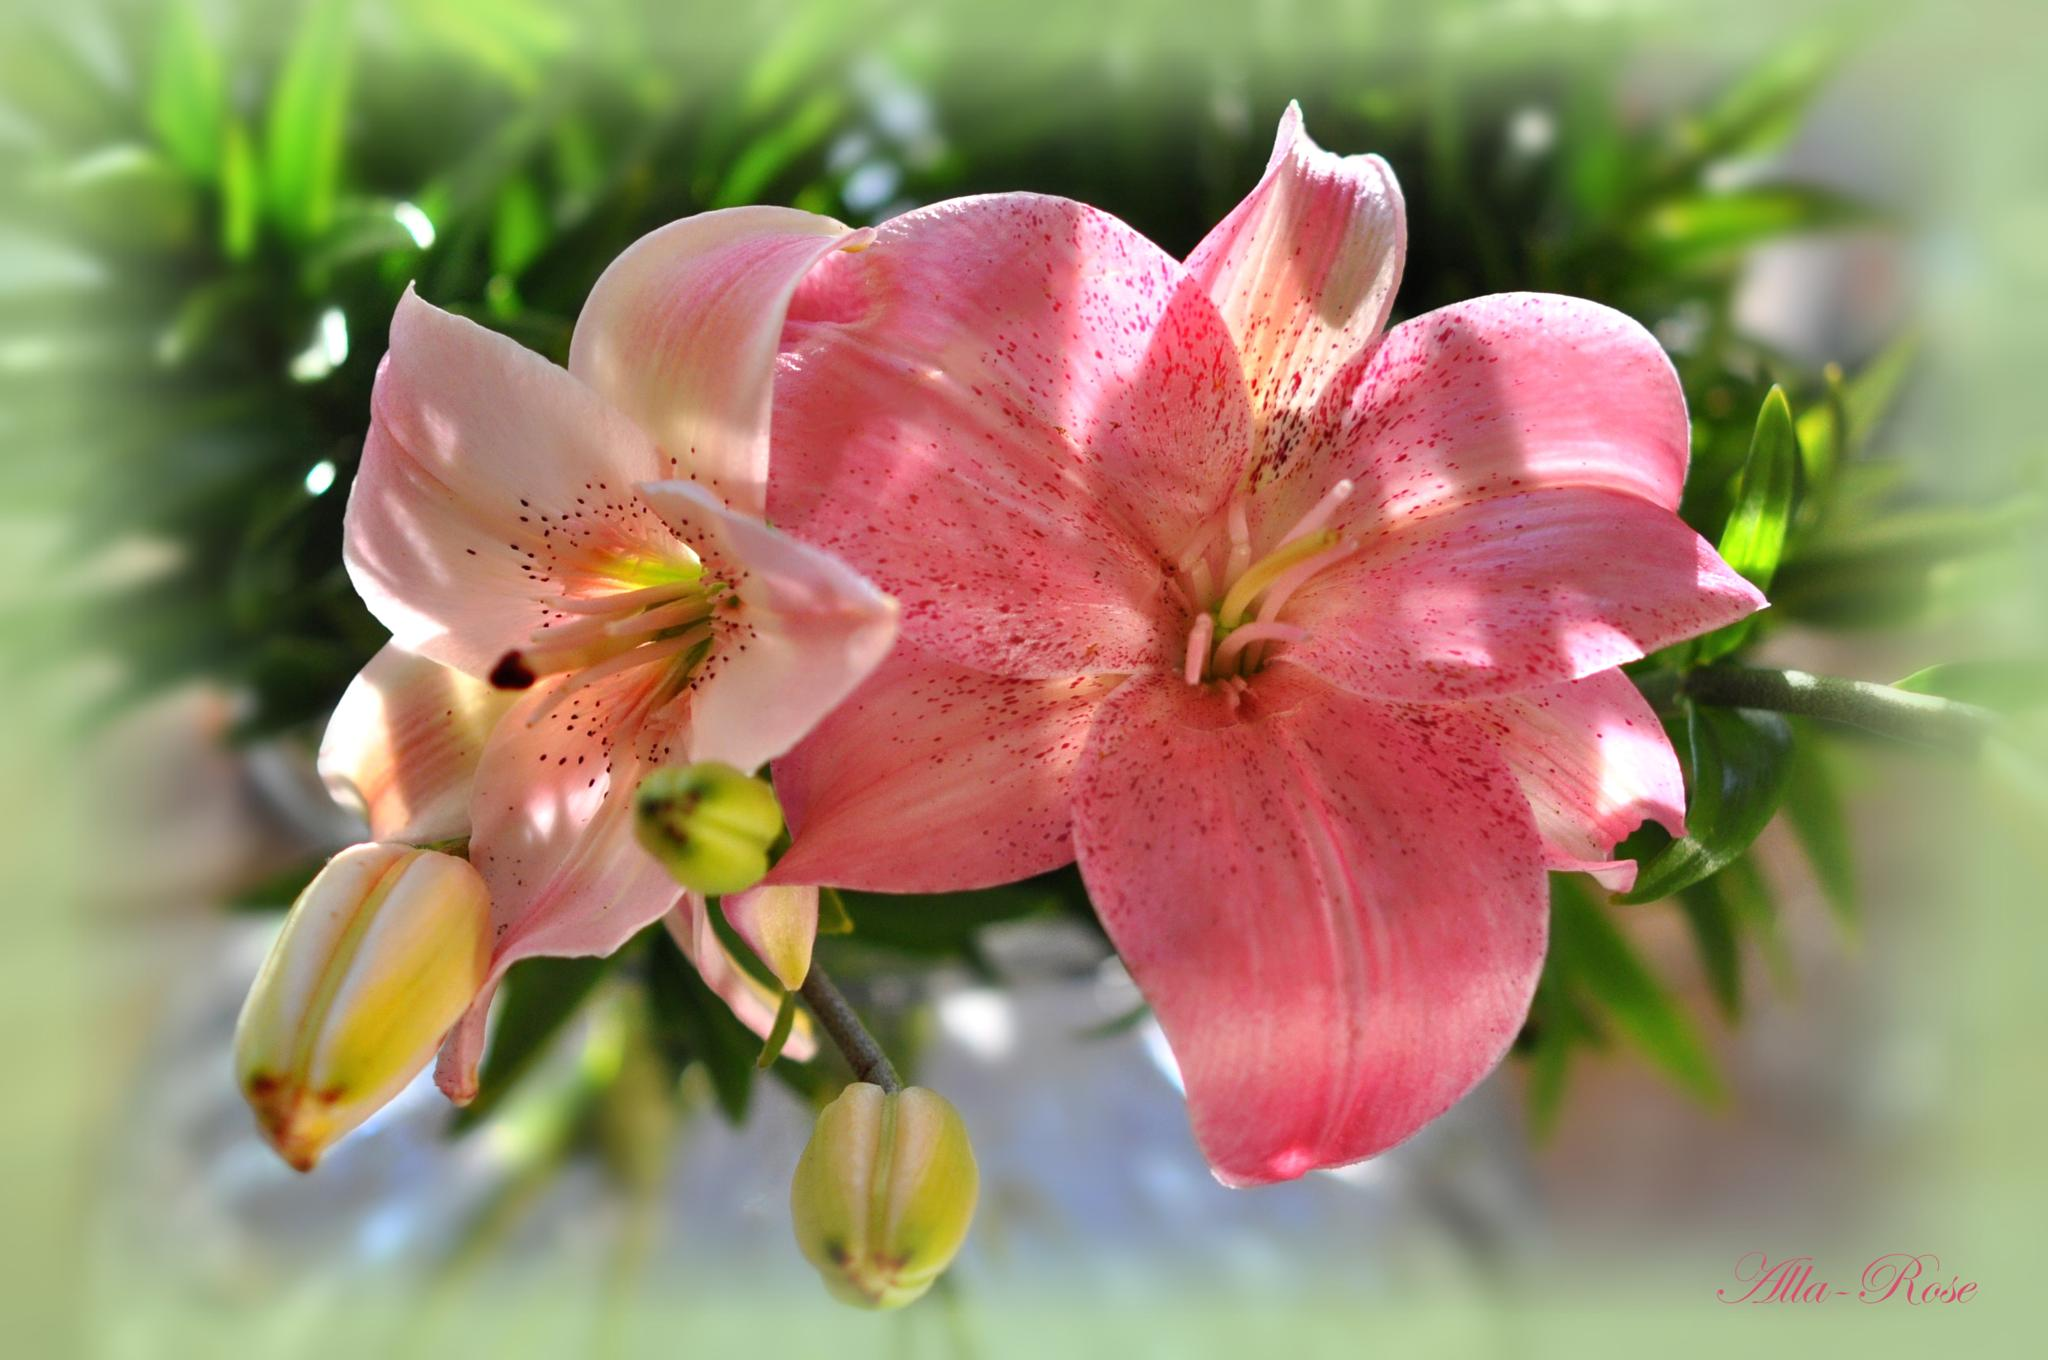 lilies with buds by Alla-Rose